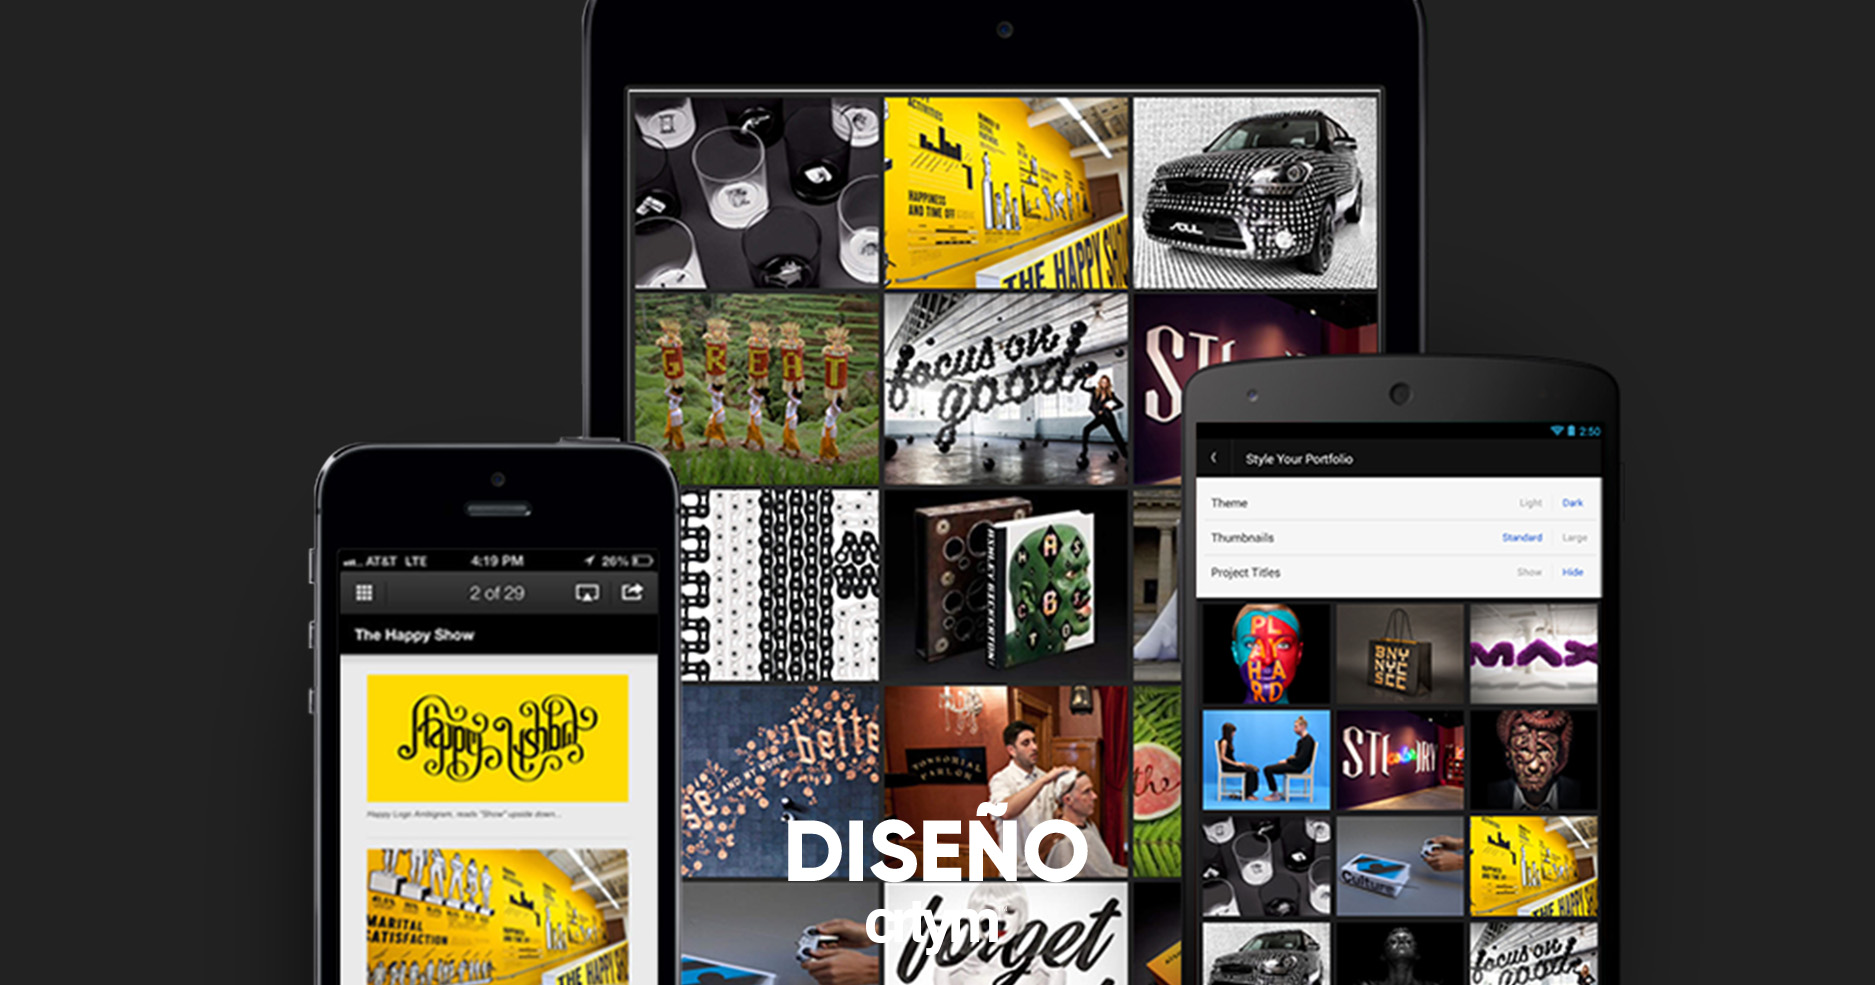 Behance Display, tu portafolio móvil